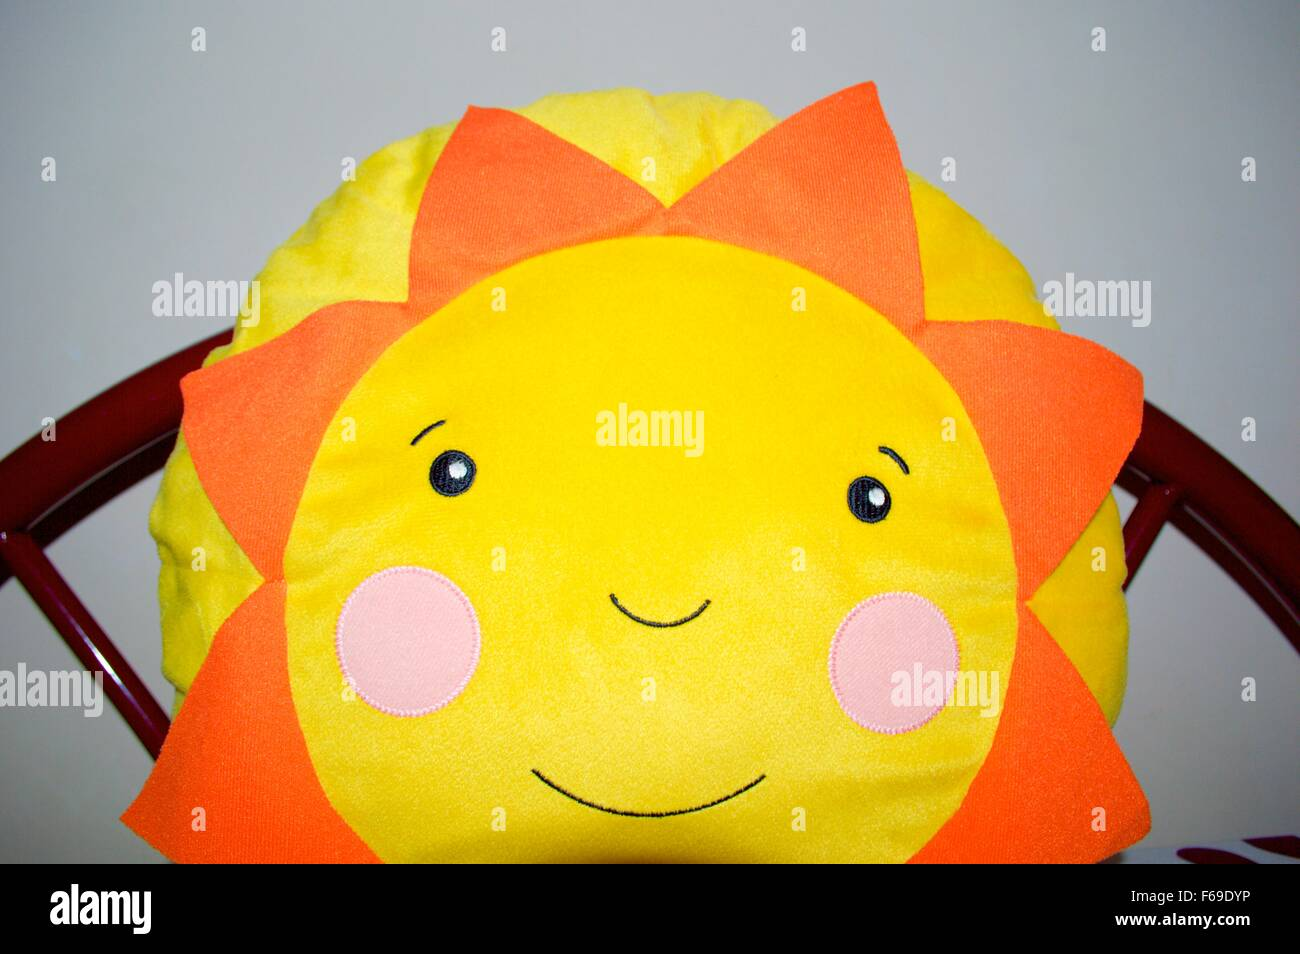 Sunflower shape baby pillow with smily - Stock Image